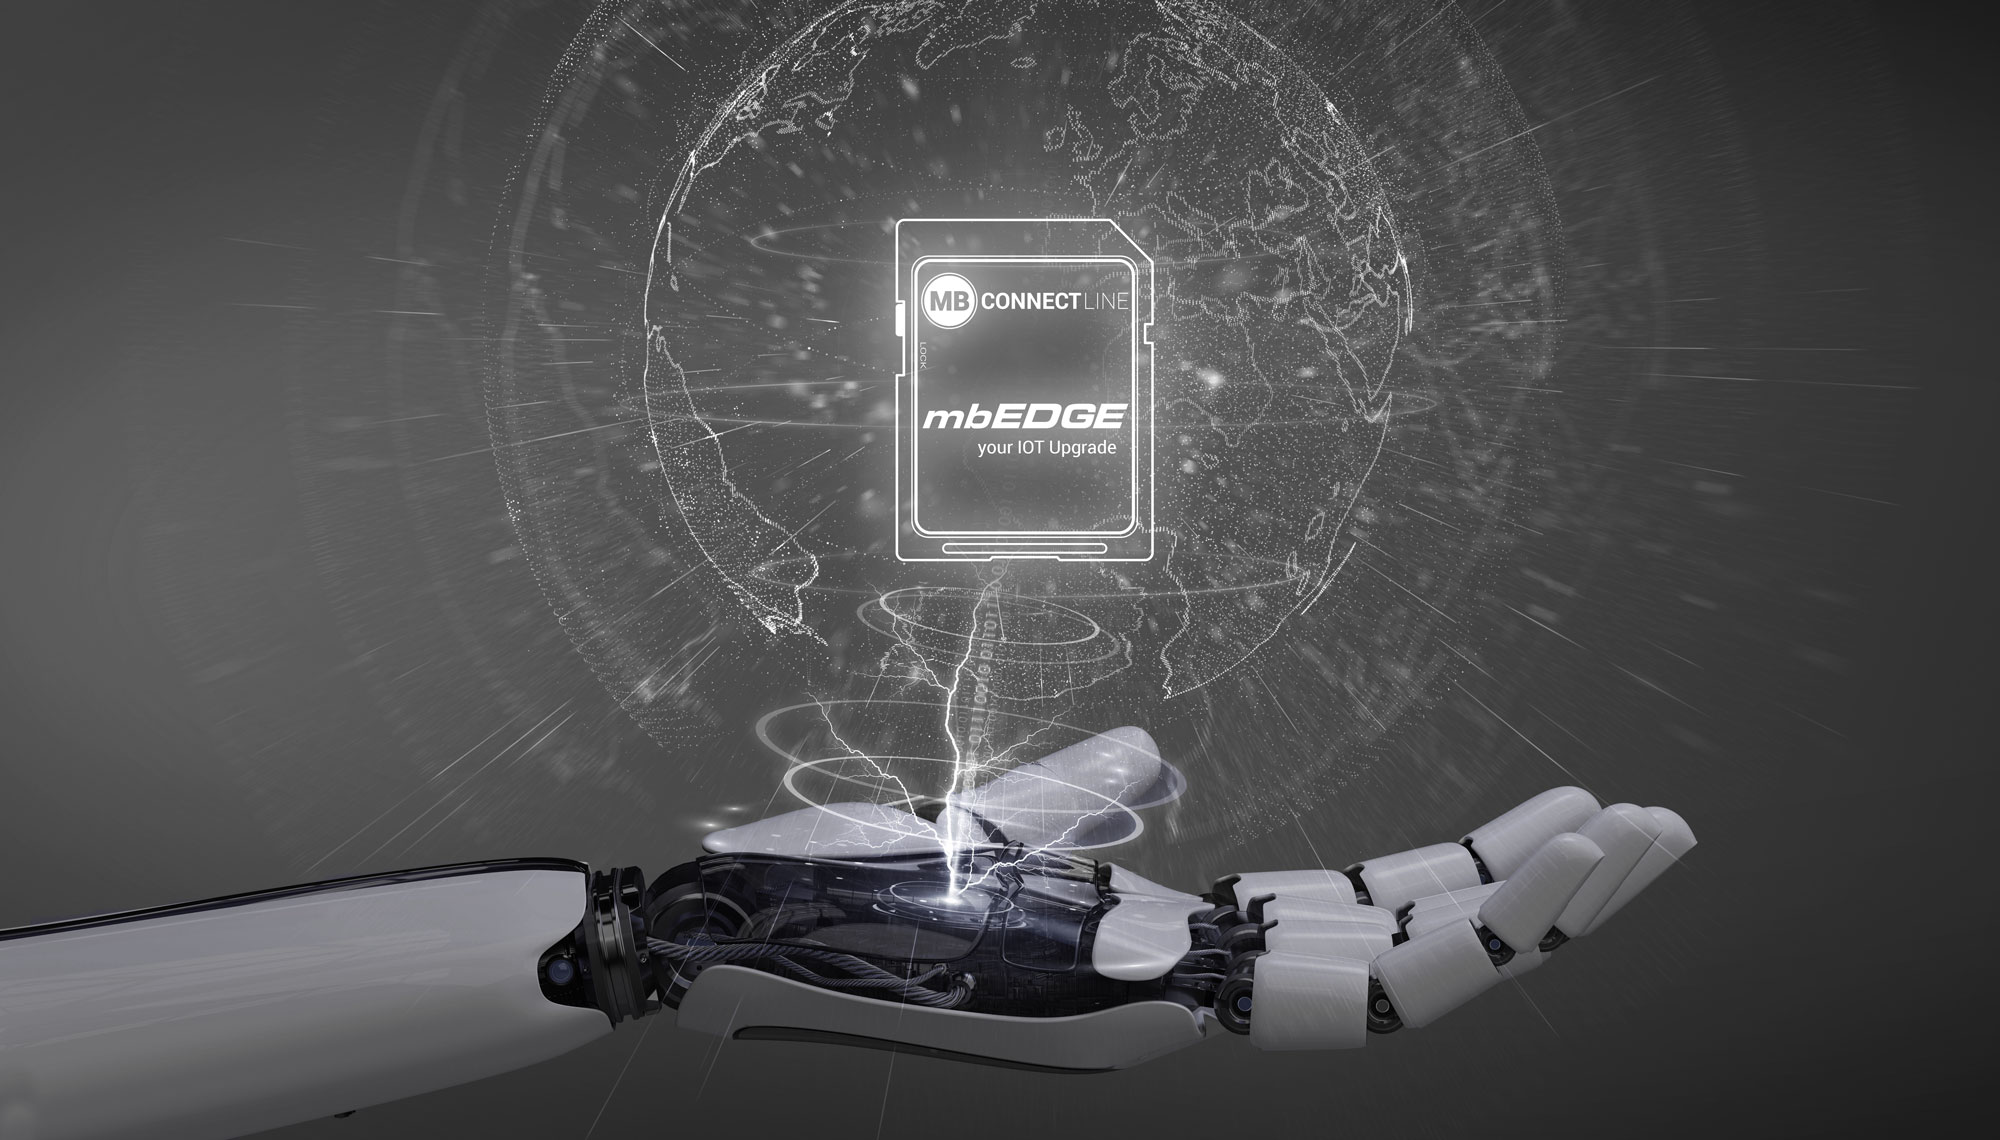 Product picture of mbEDGE - IoT Upgrade for your Remote Access